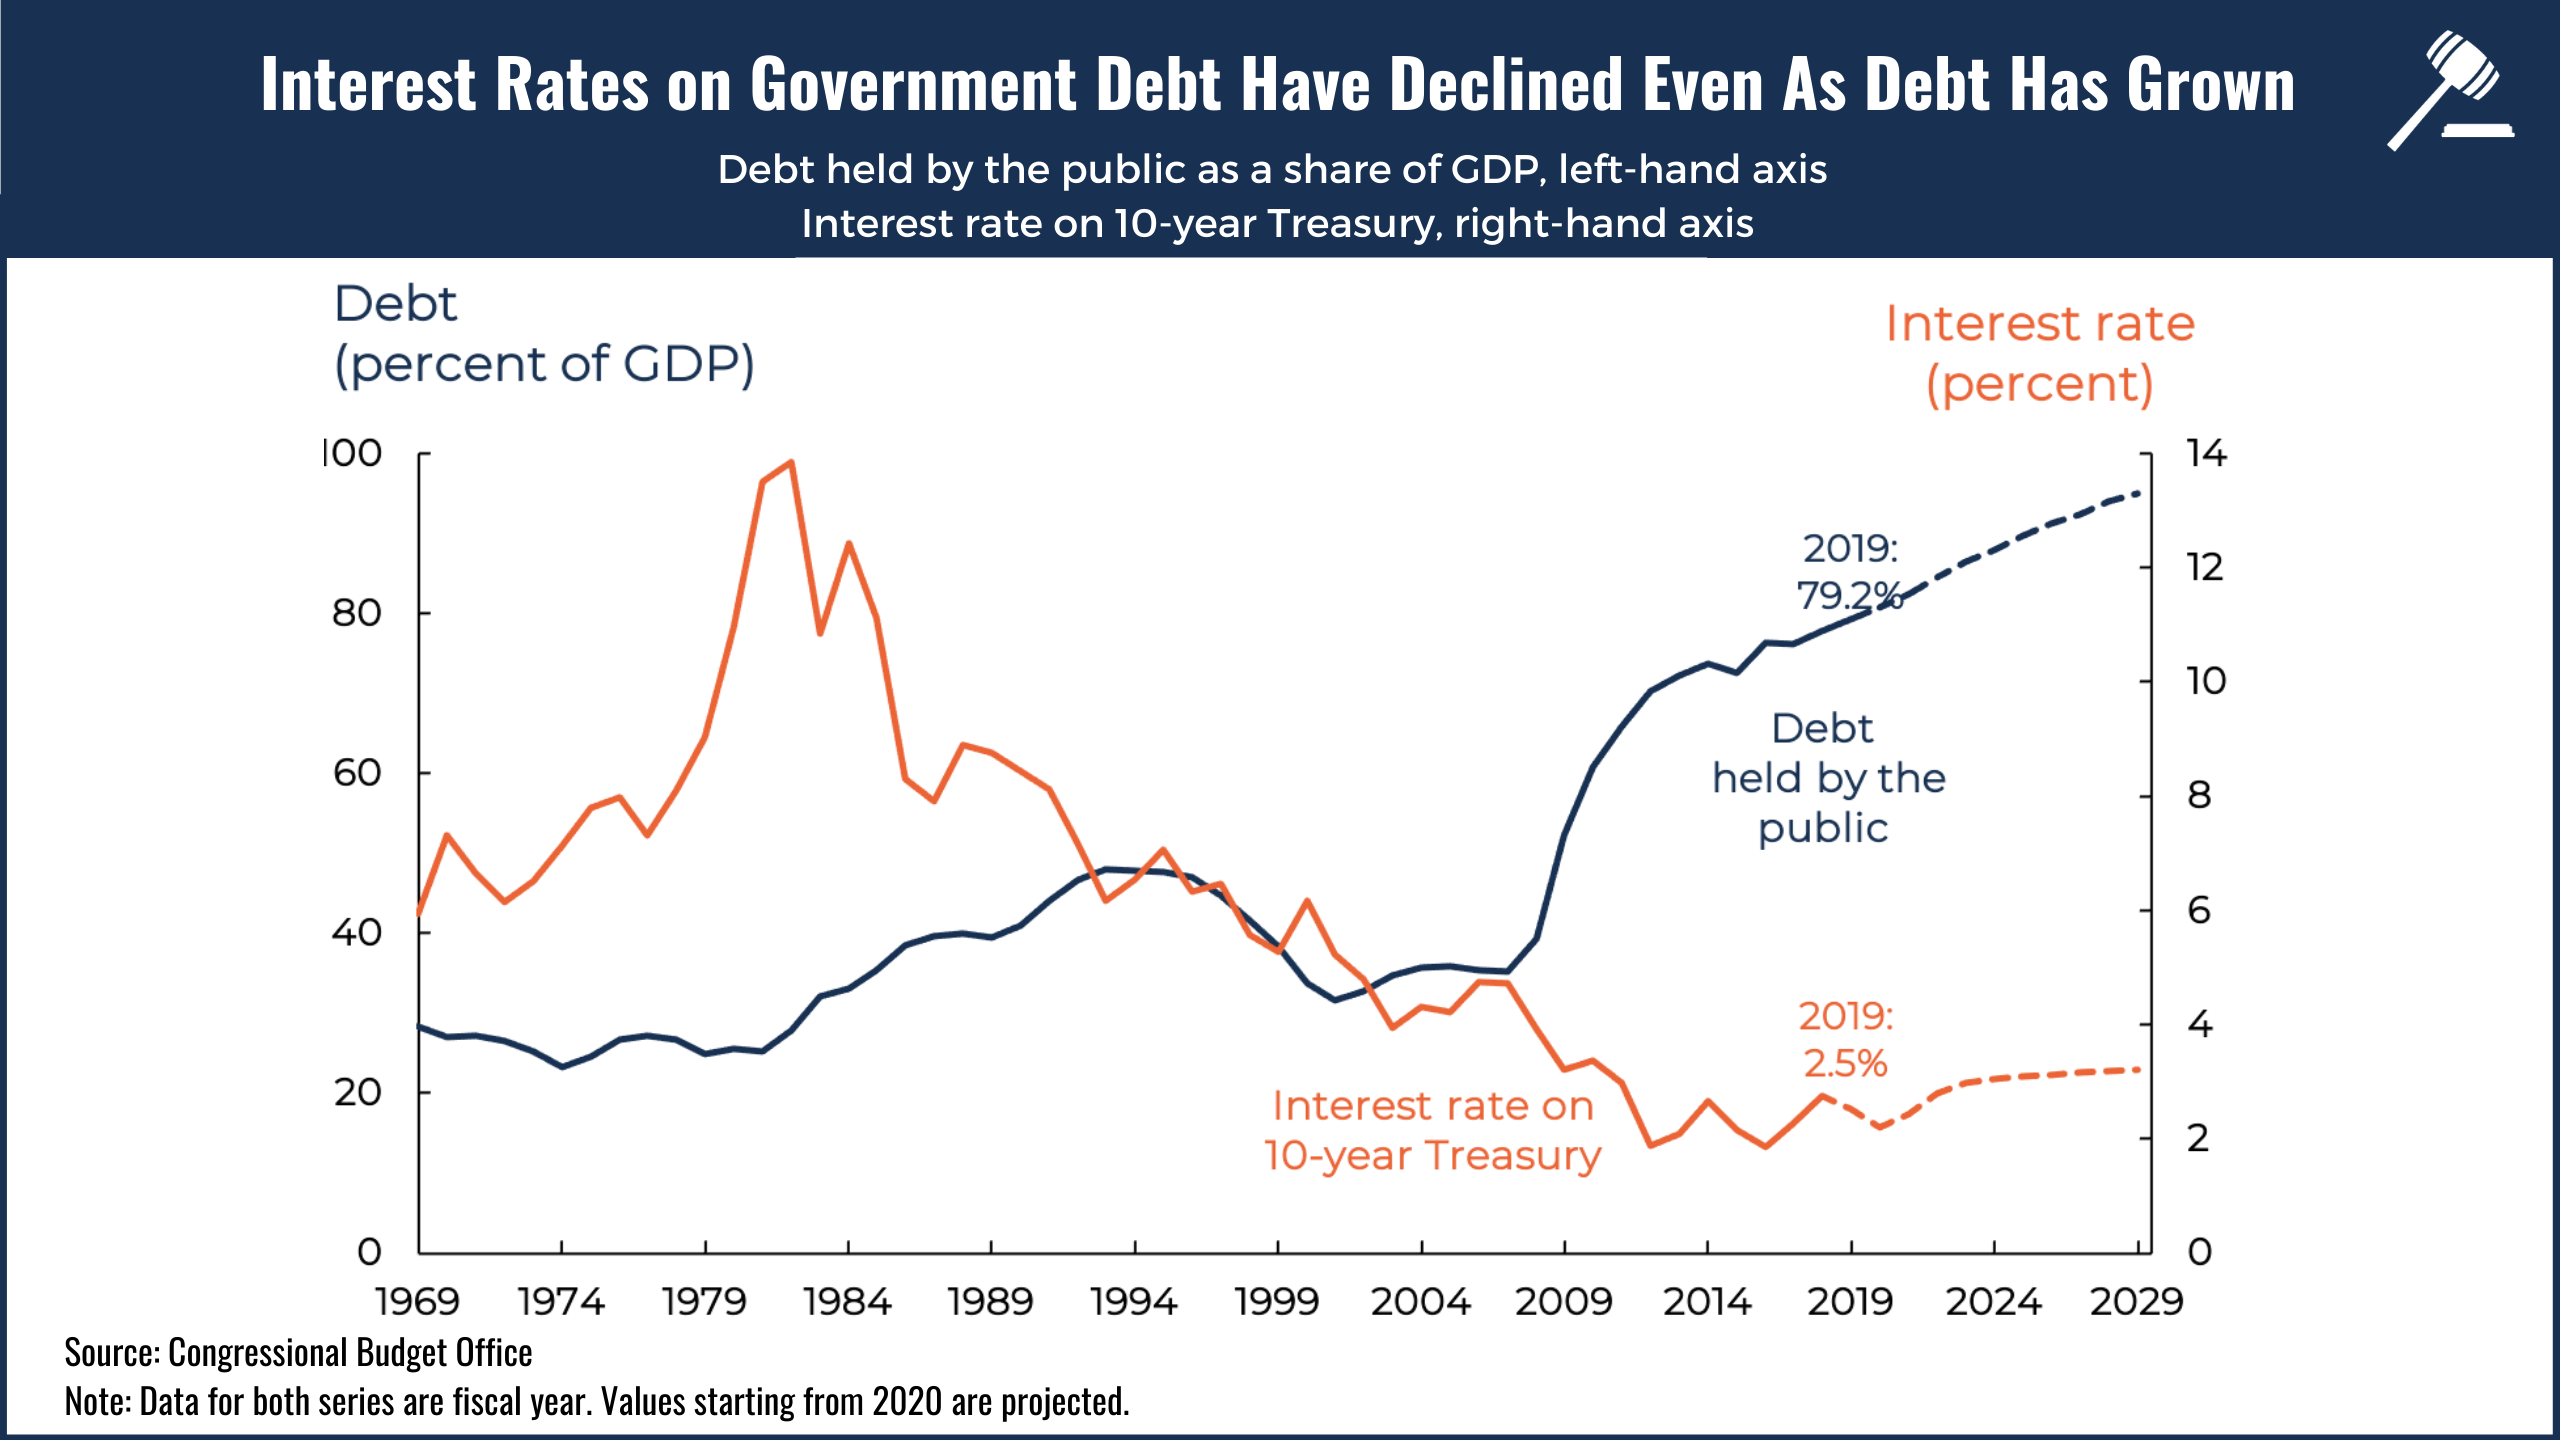 Federal Debt interest rates have declined even as debt has grown